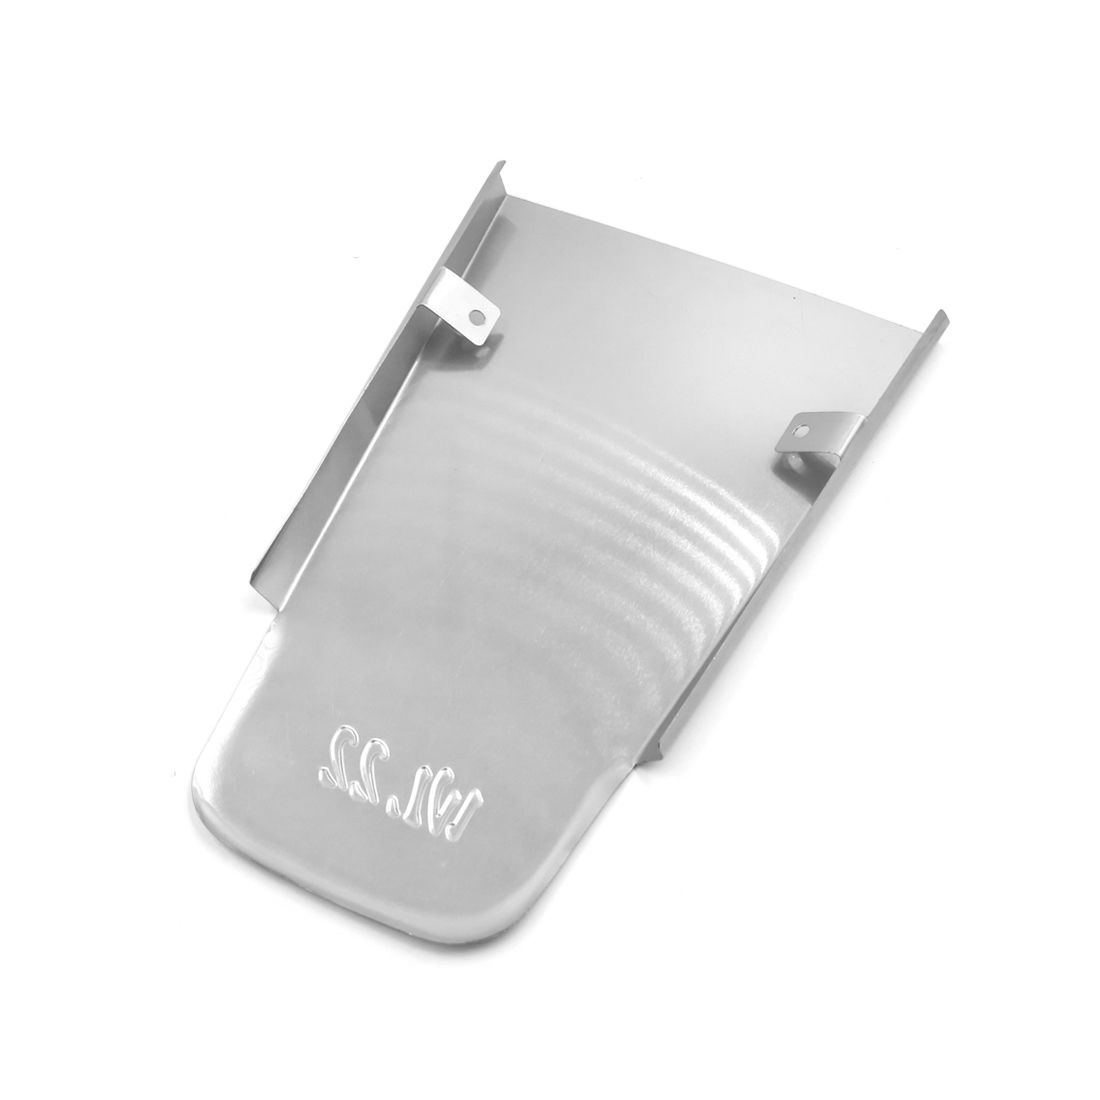 Silver Tone Aluminum Alloy Motorcycle Rear Fender Mudguard Plate - image 1 of 3